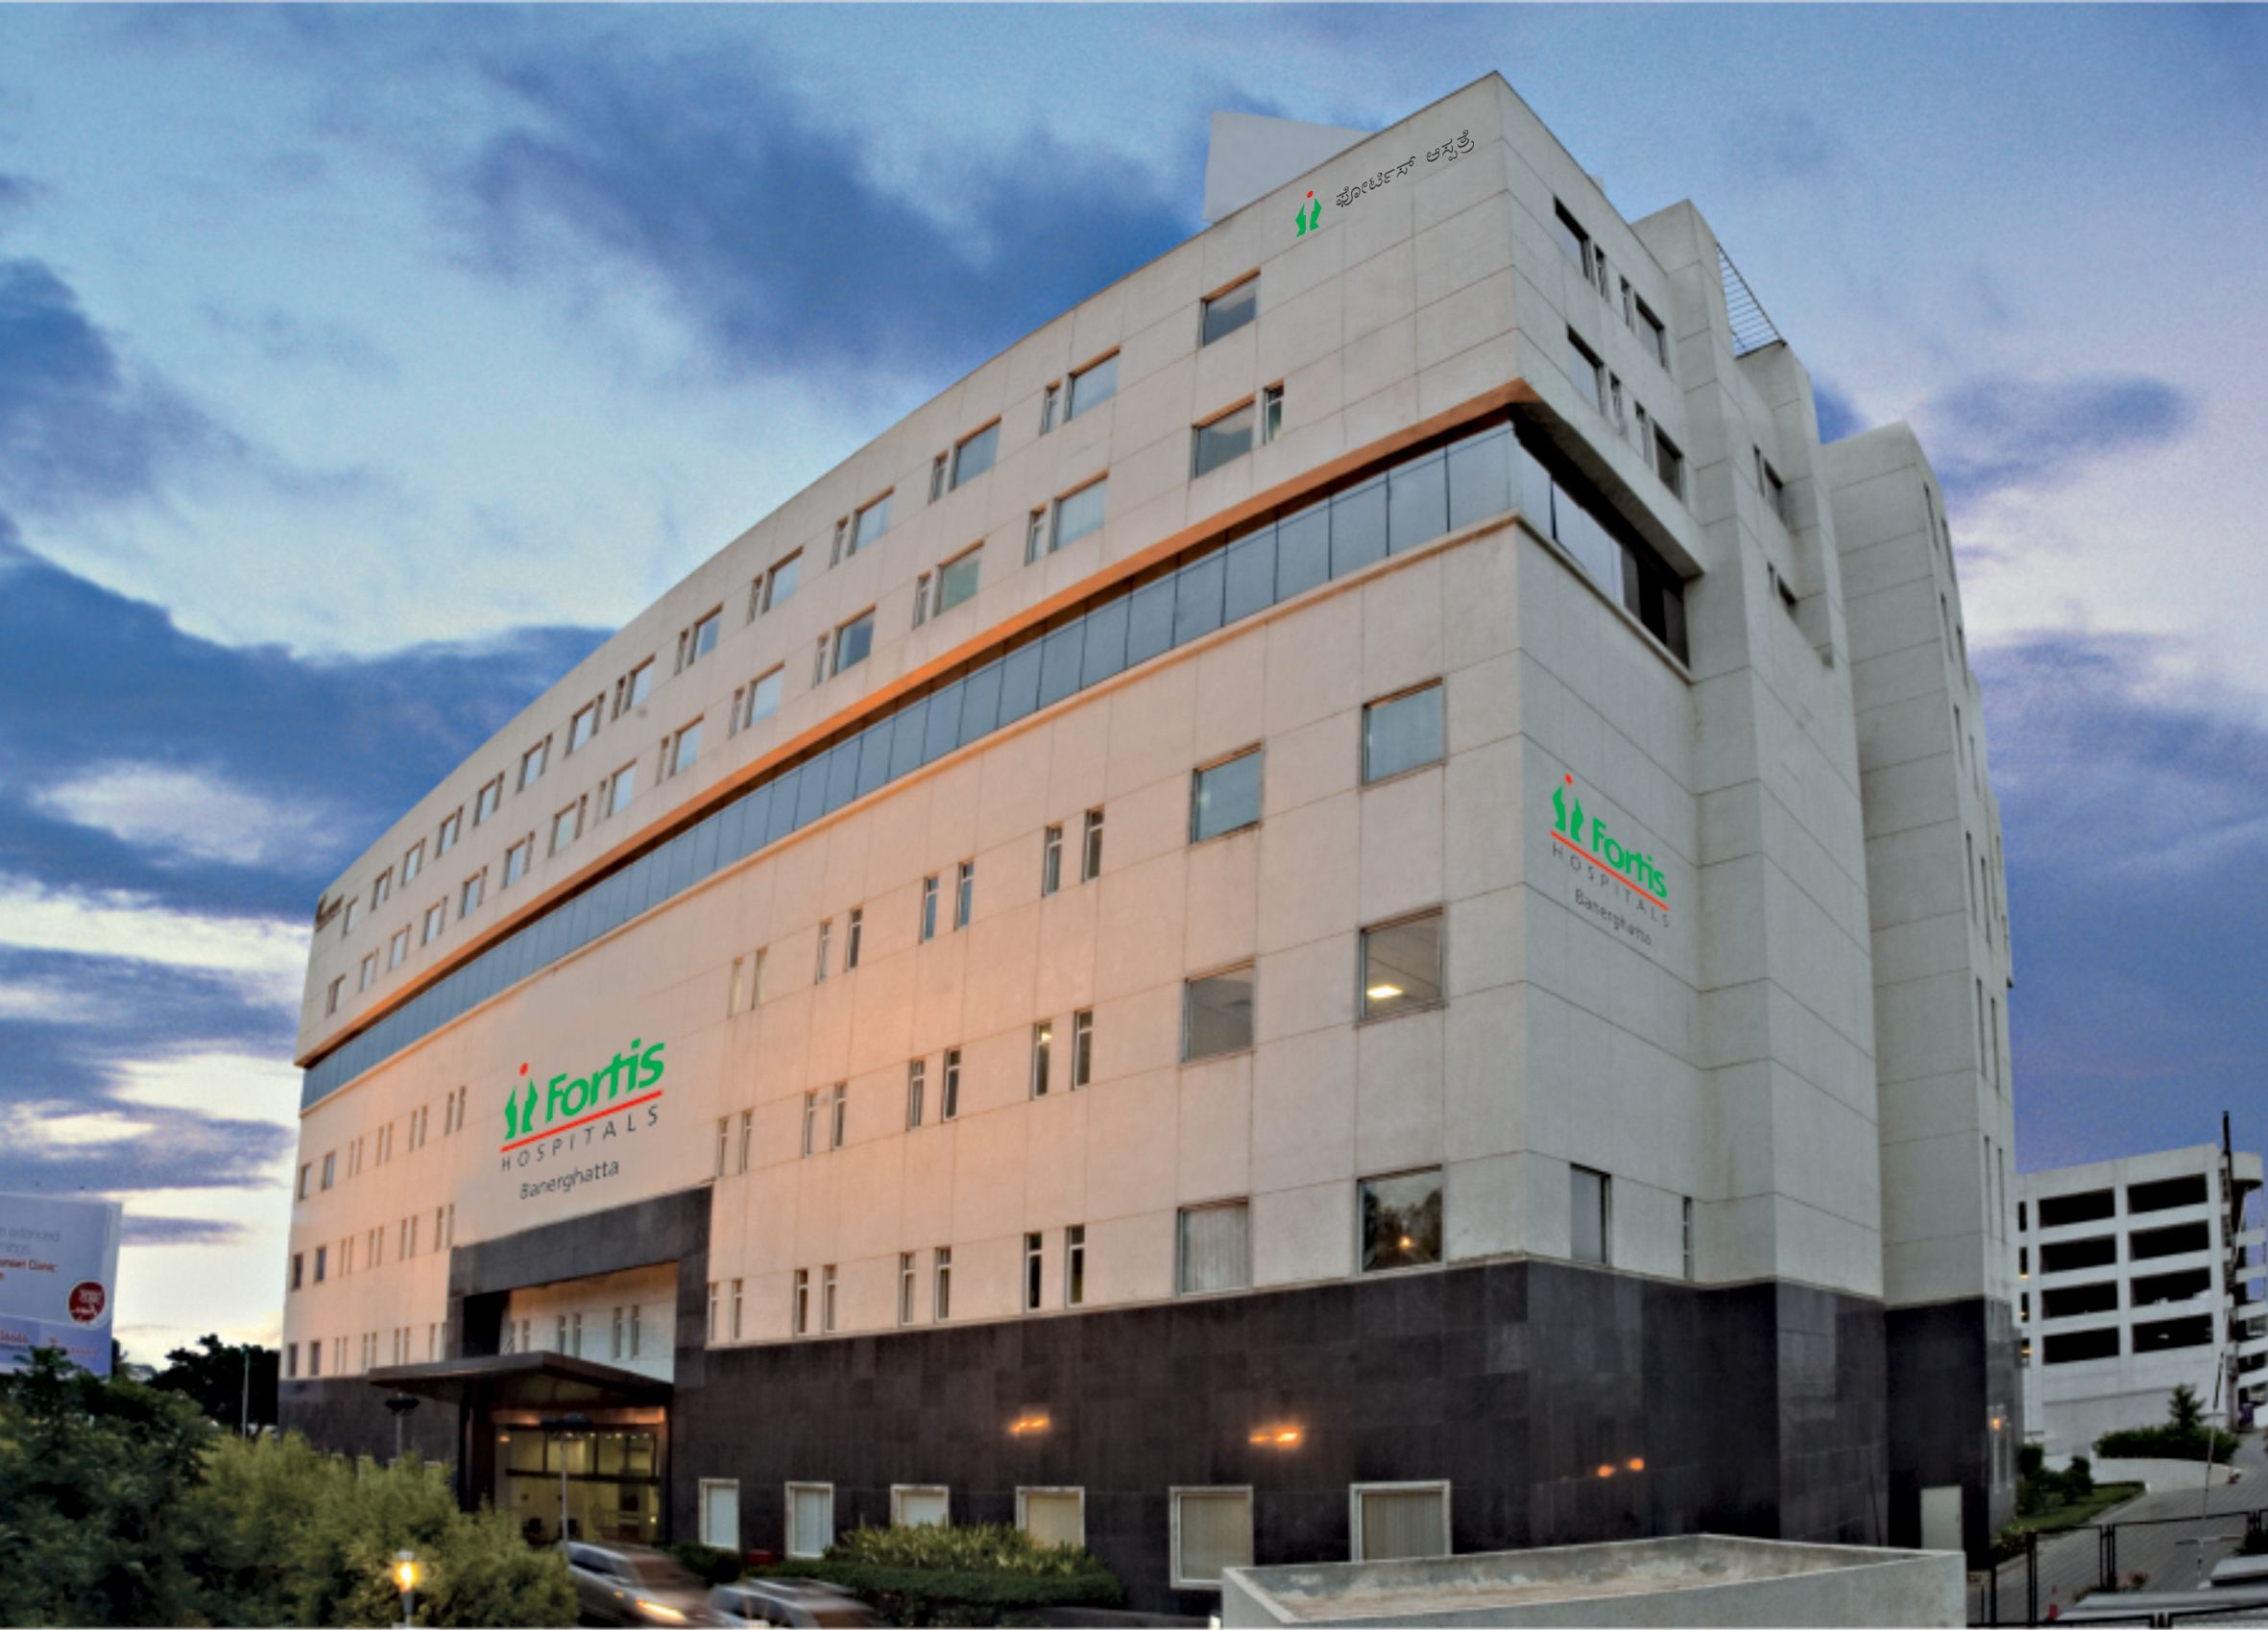 Religare Healthcare Trust's Fortis Hospitals Bannerghatta